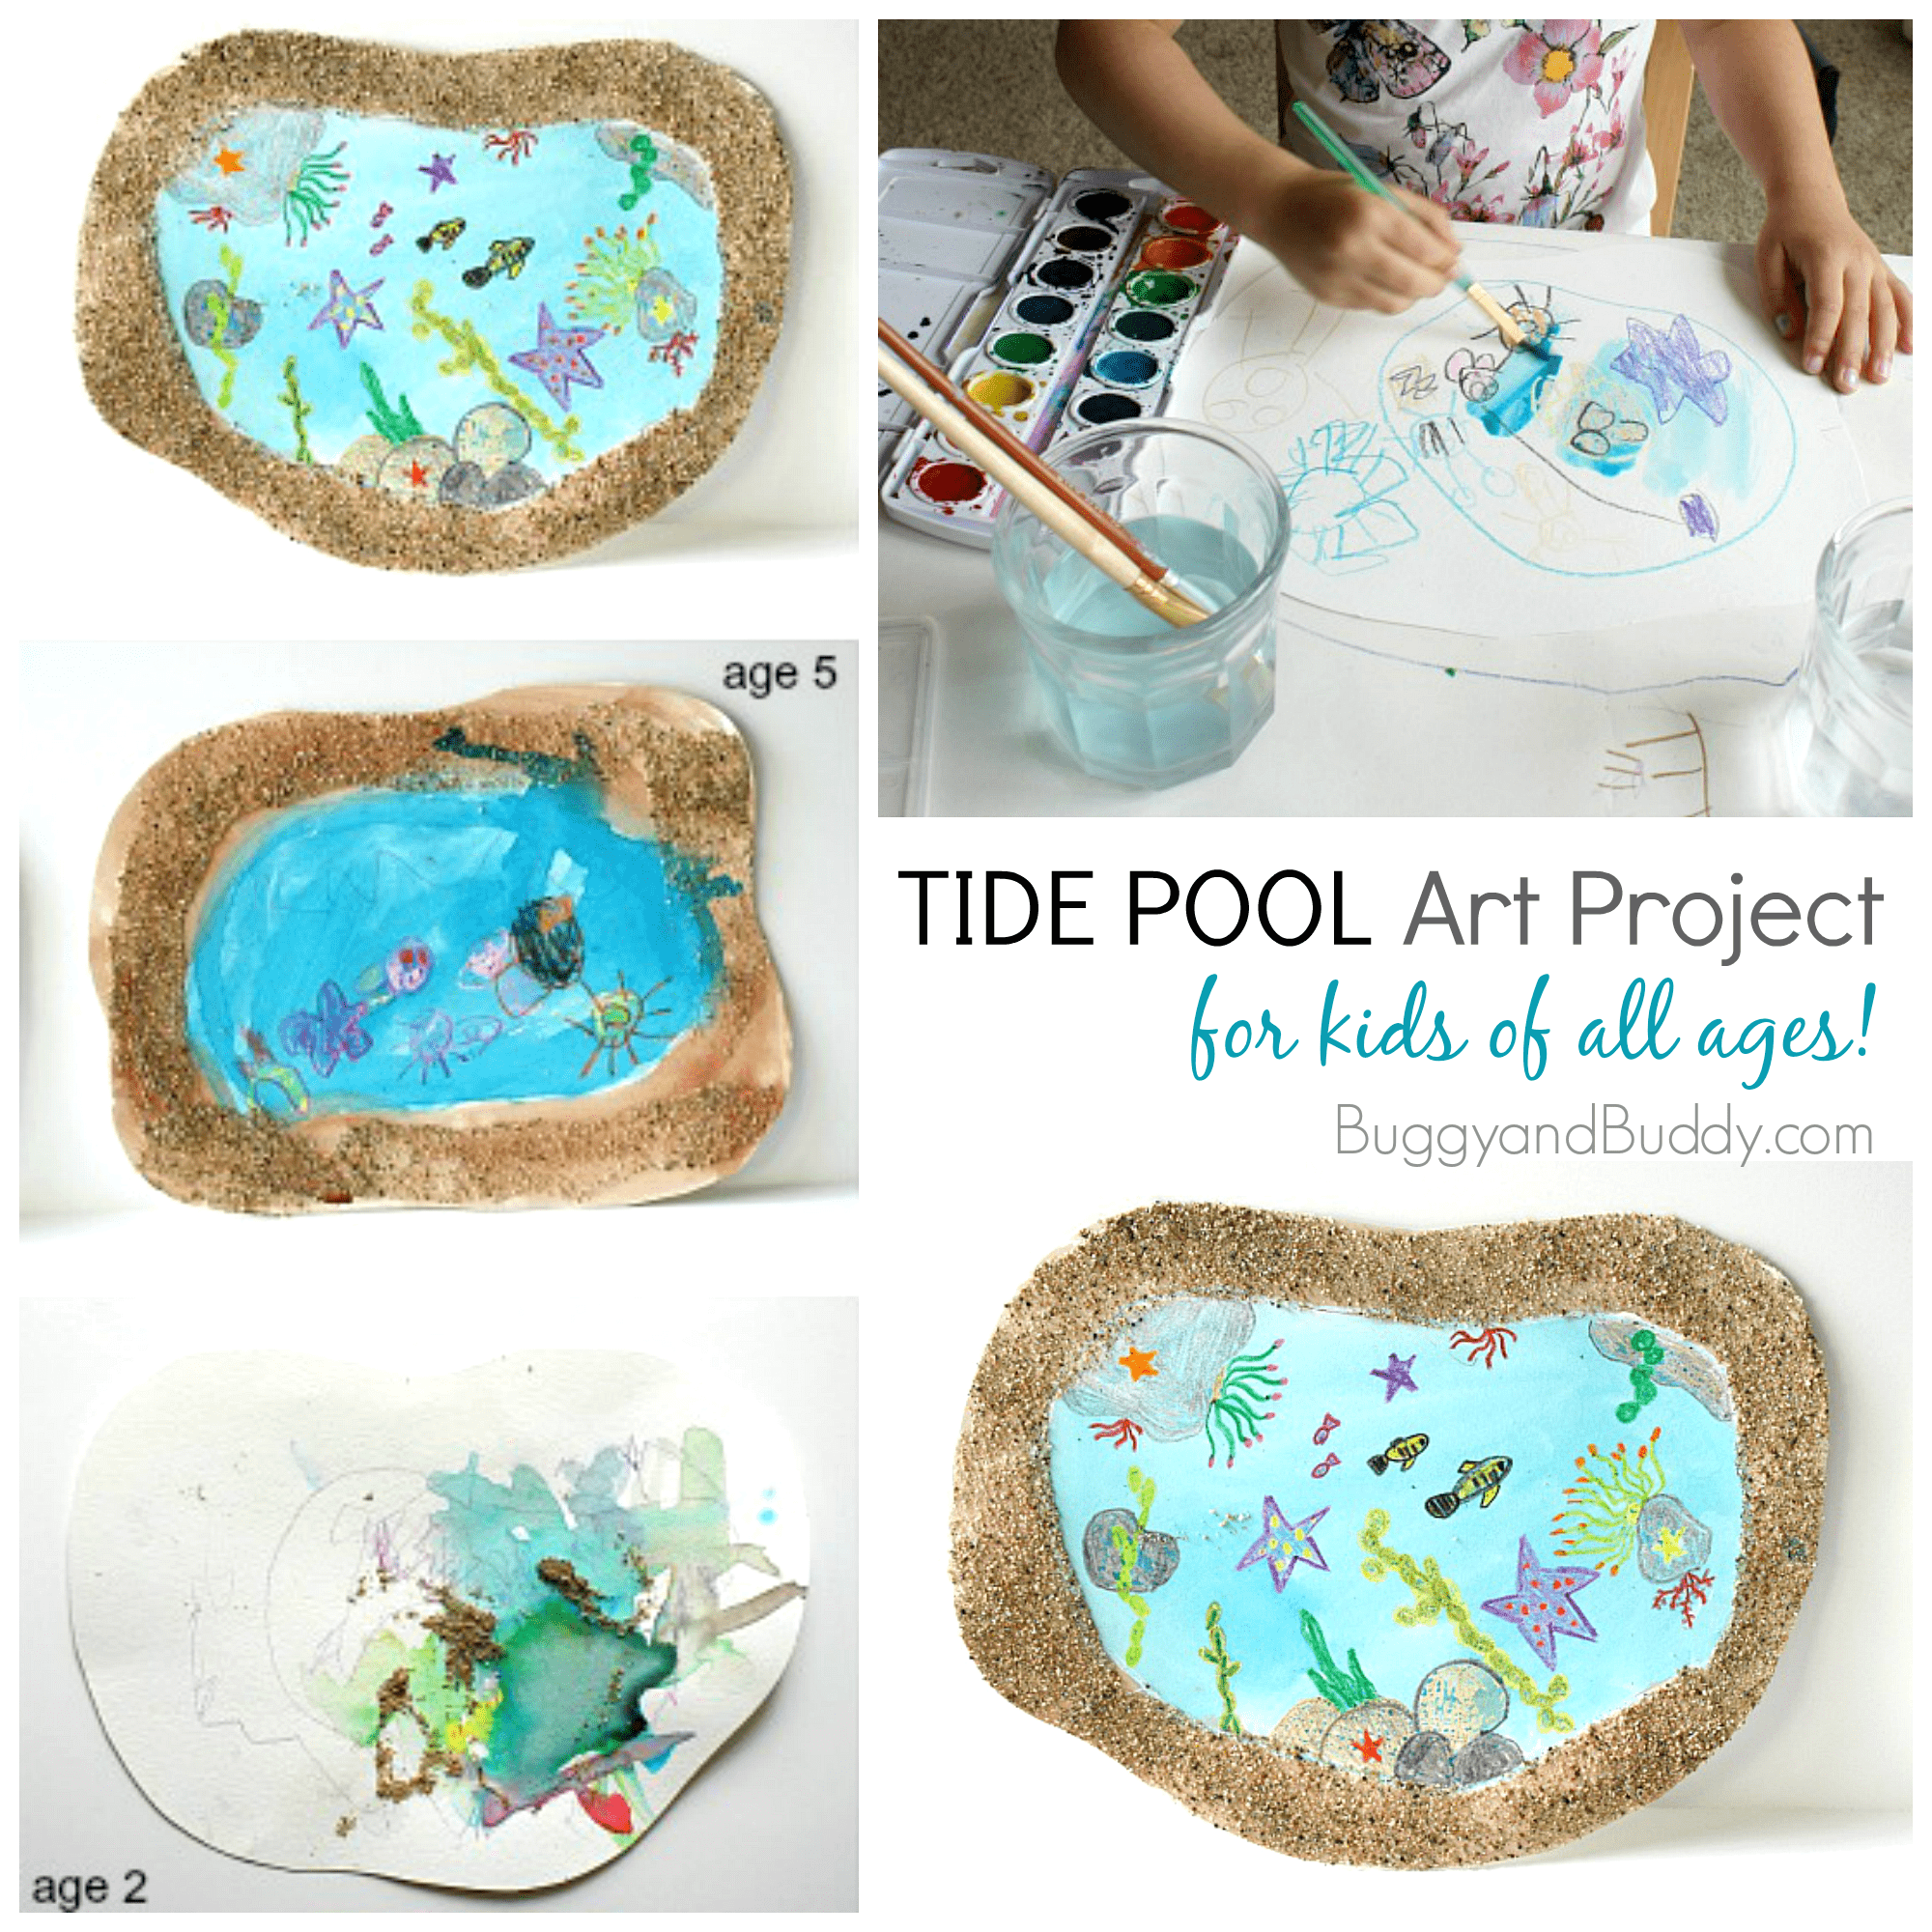 Tide Pool Art for Kids - Buggy and Buddy